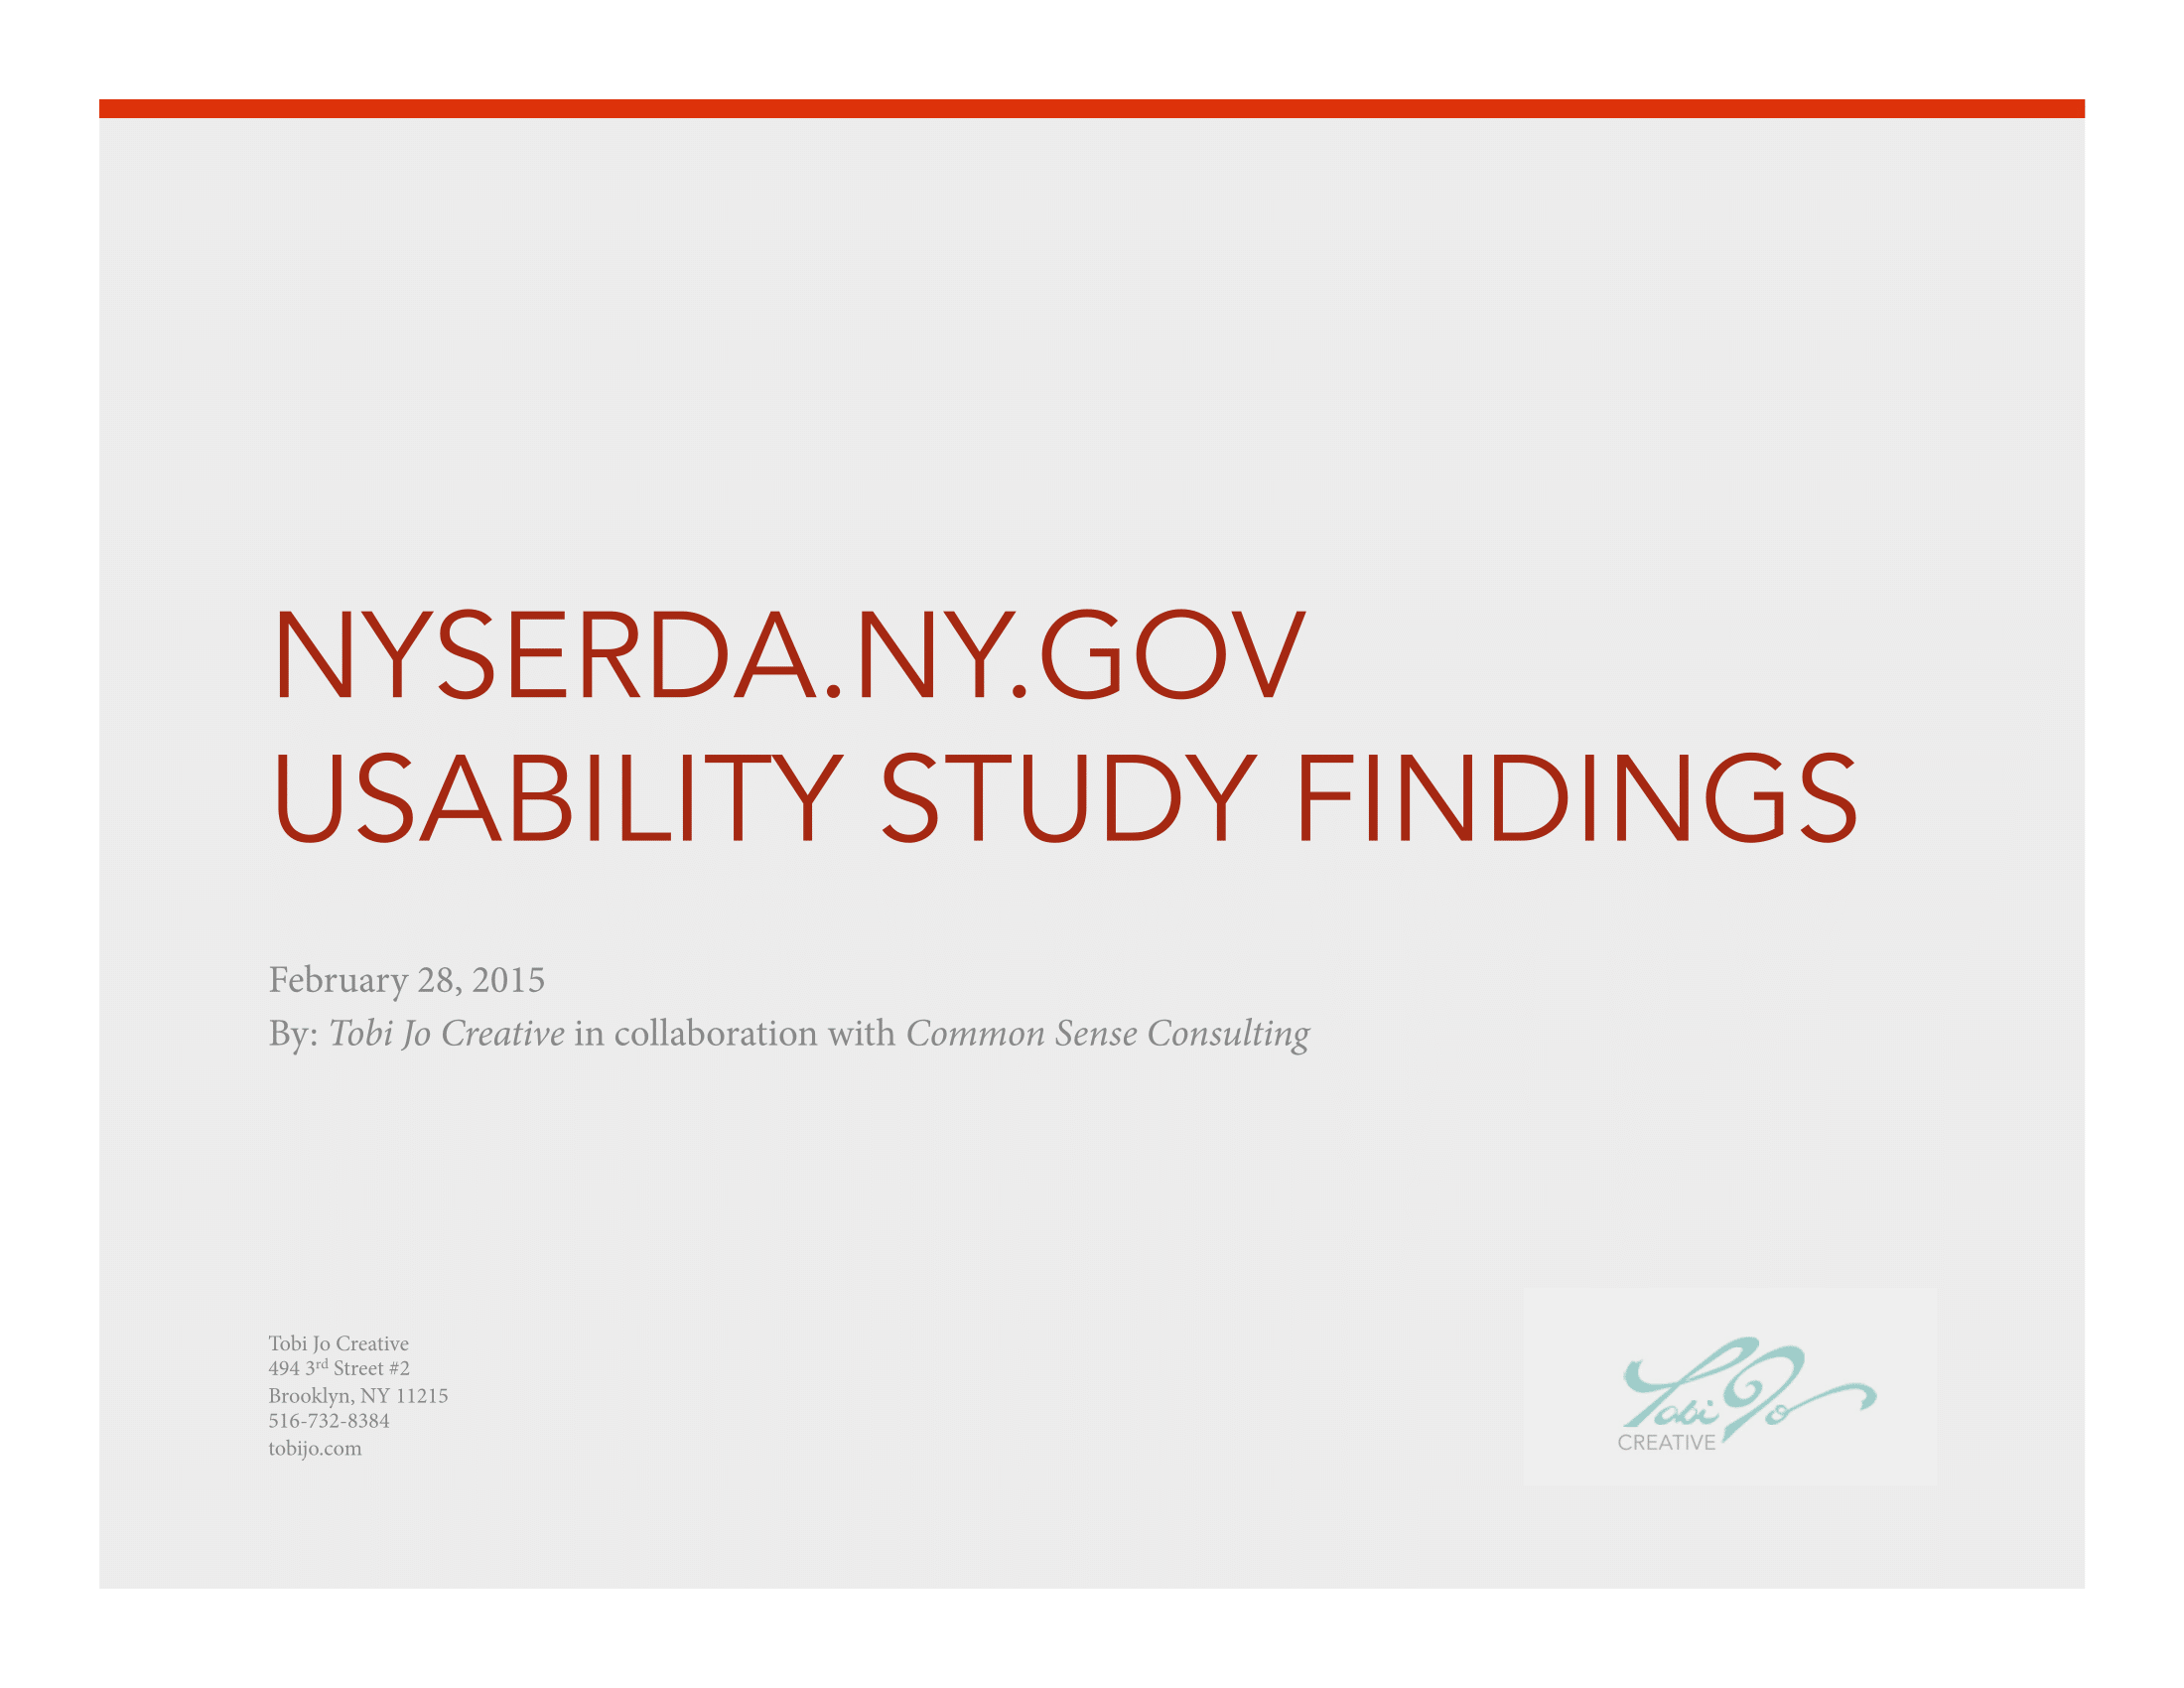 NYSERDA_Usability_Findings_Feb2015_PRESENTED 1-1.png